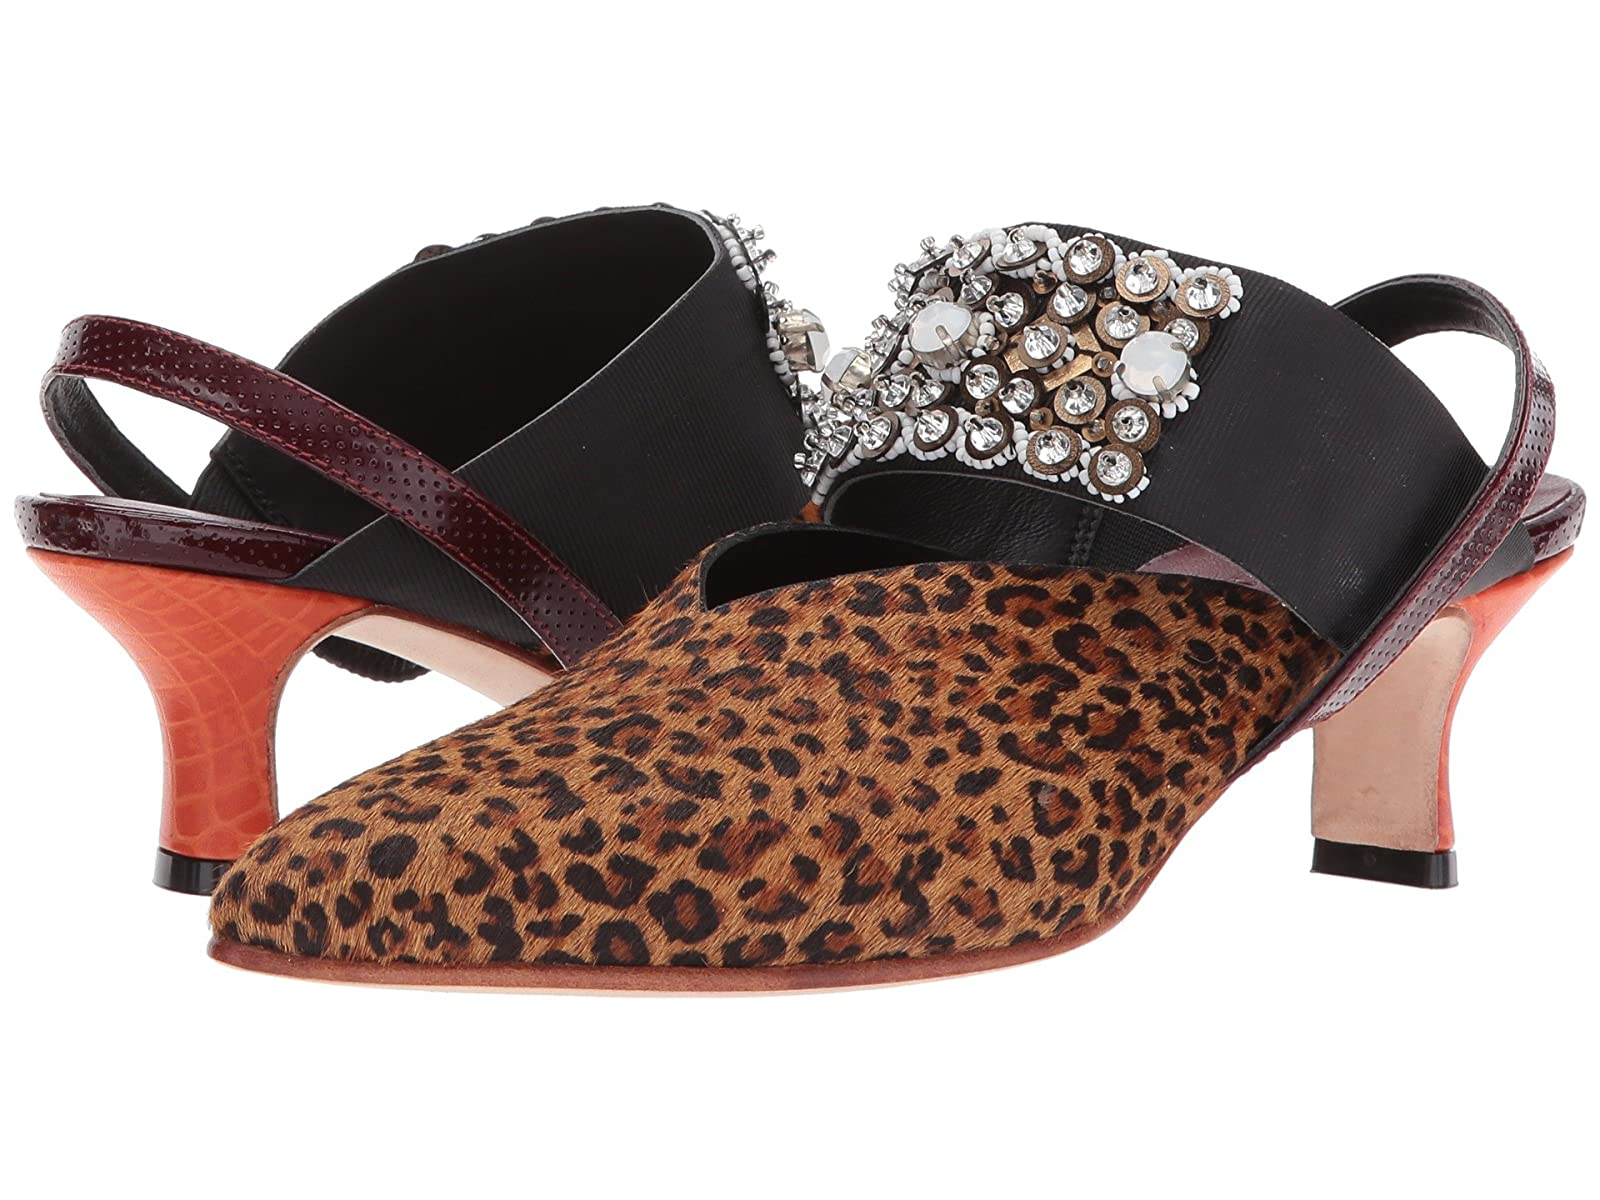 Rachel Comey Beaded WextCheap and distinctive eye-catching shoes